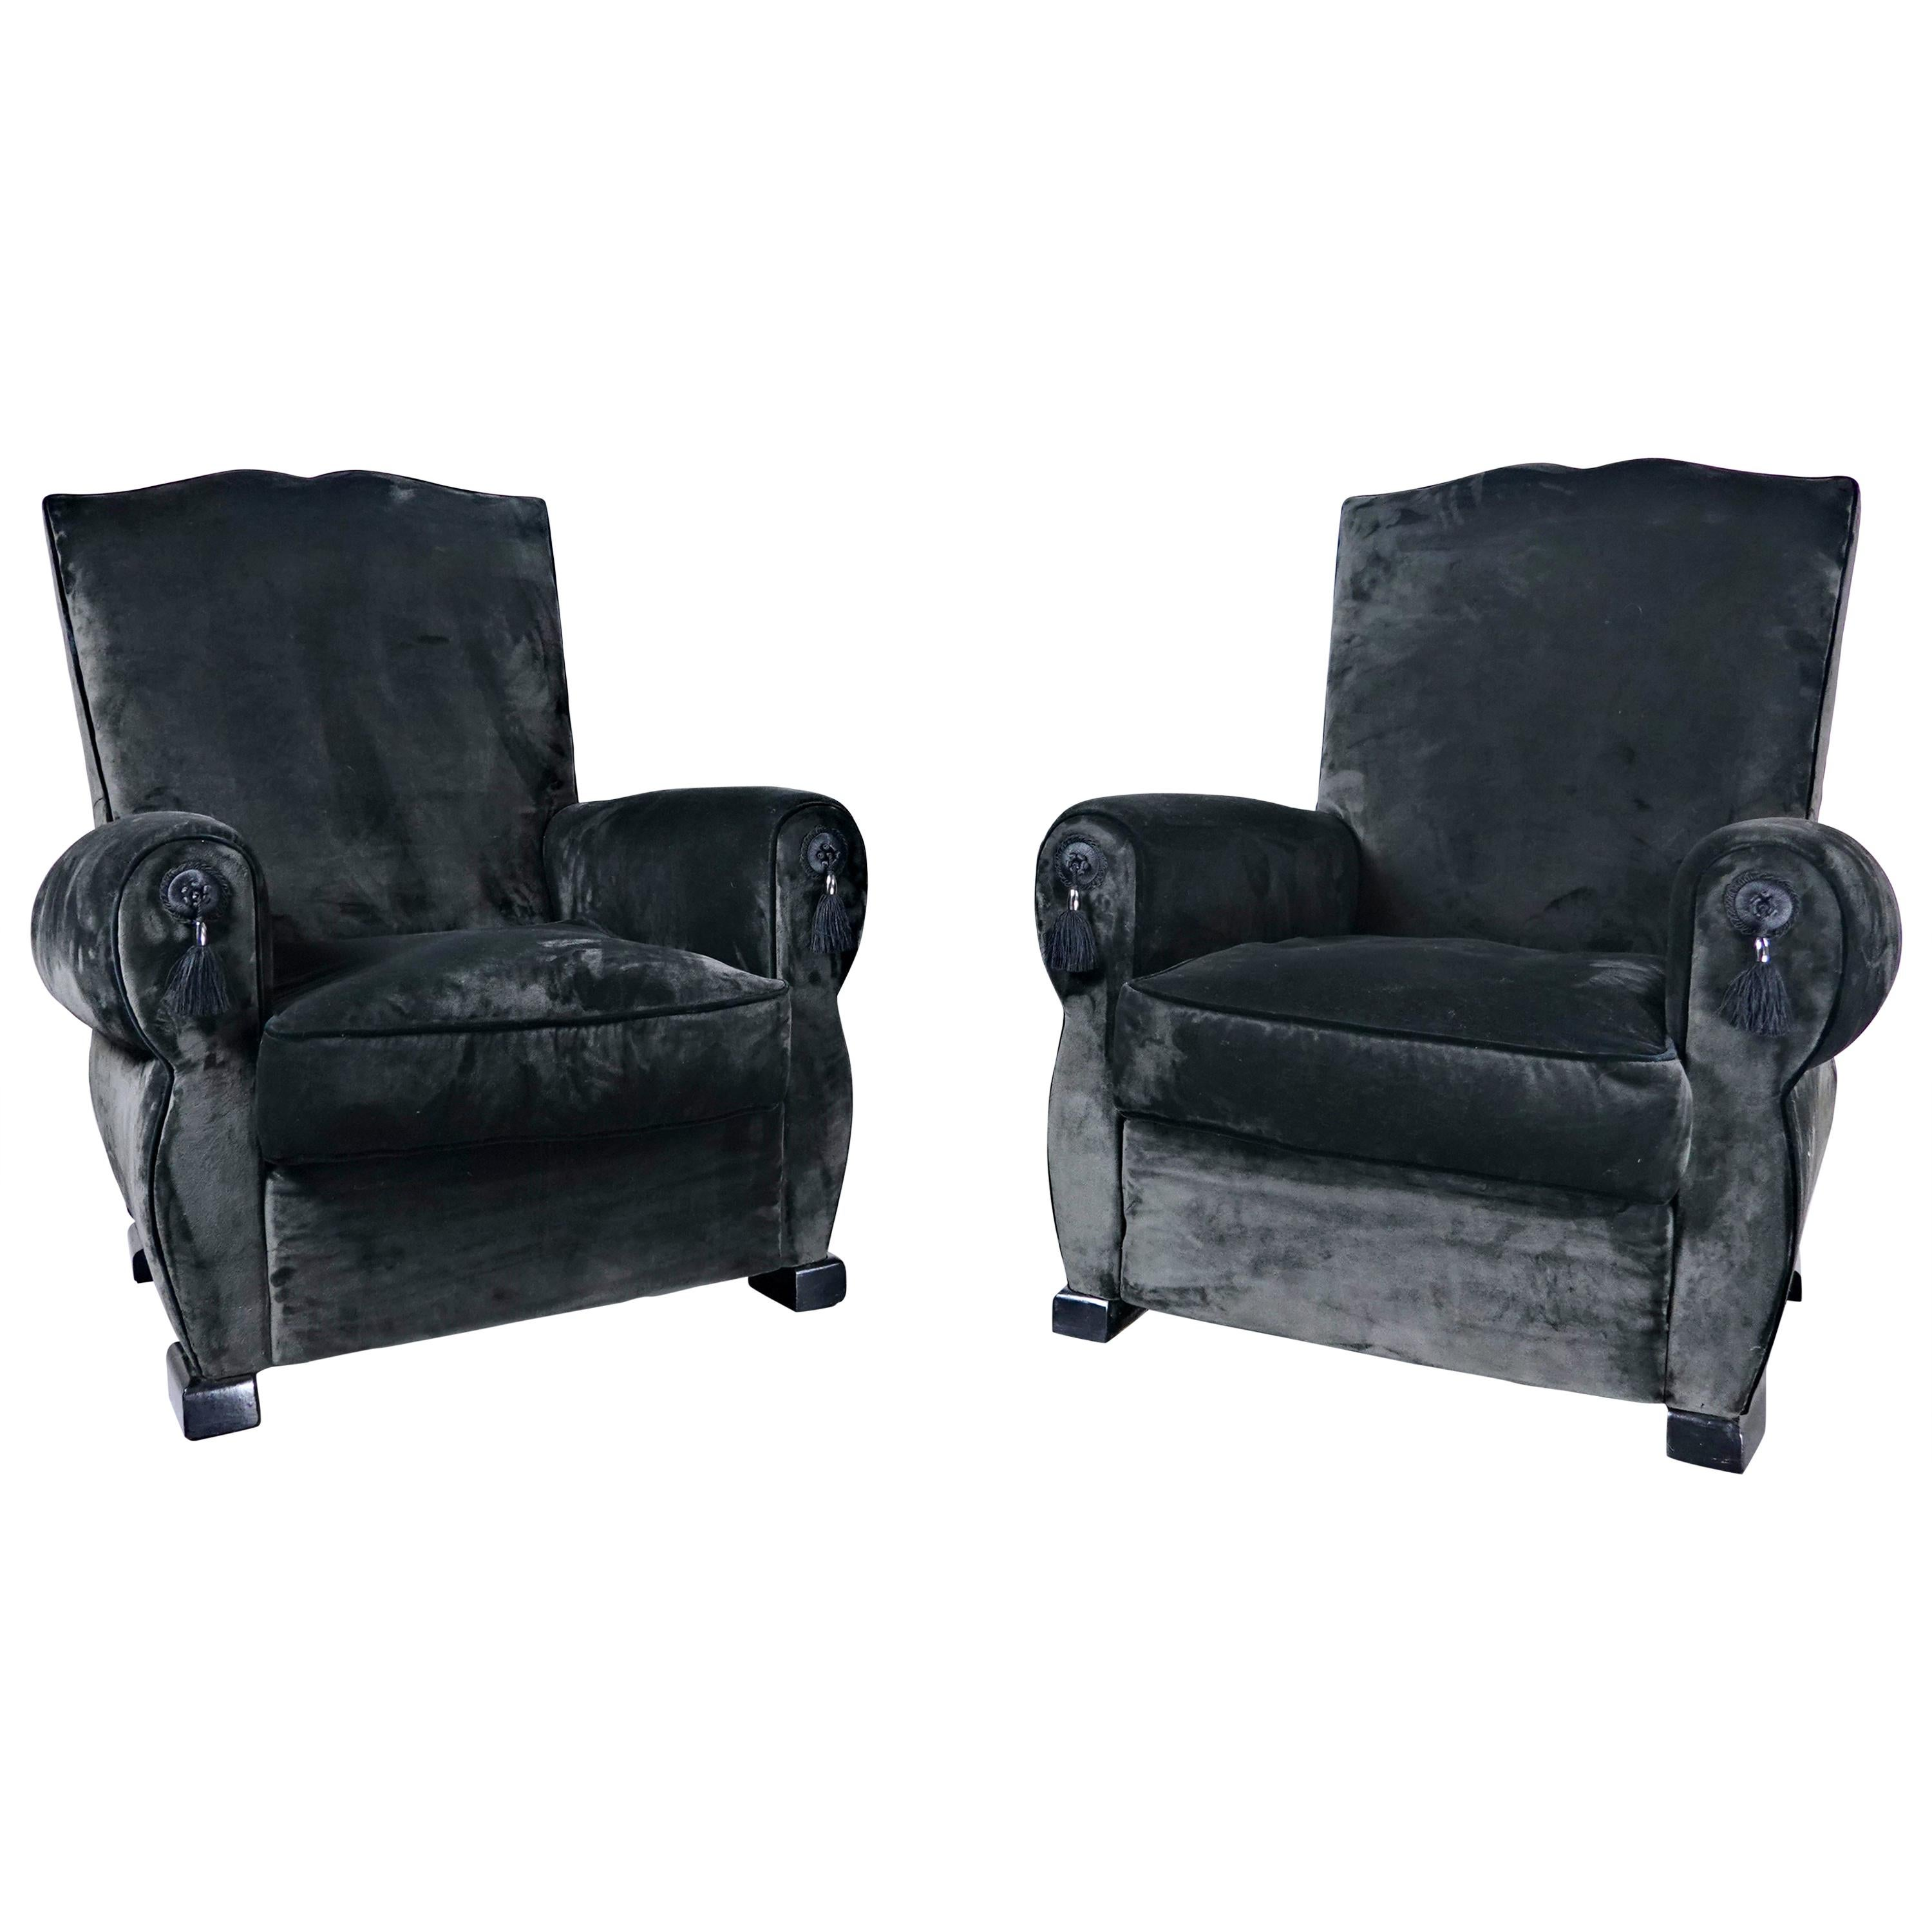 Pair of French Club Chairs, 1940s